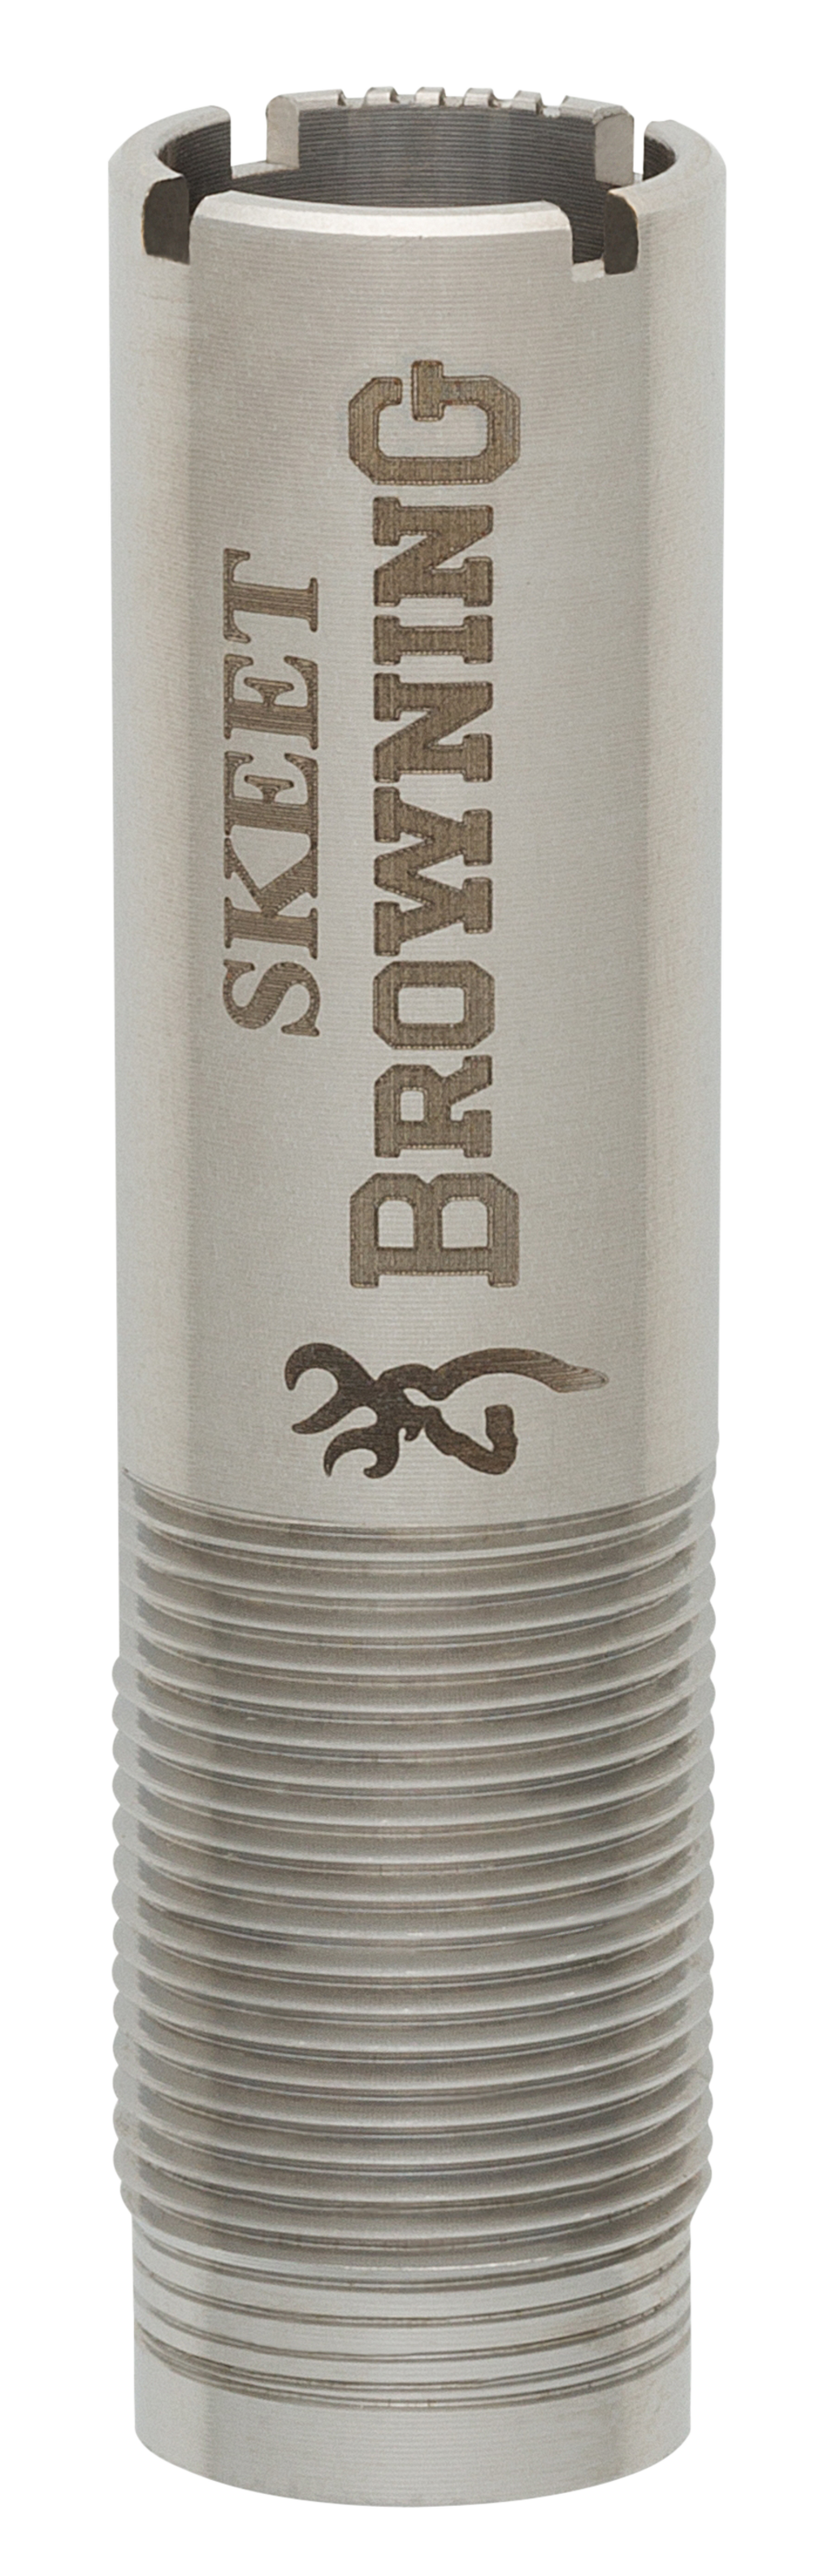 Browning Invector Standard-img-1